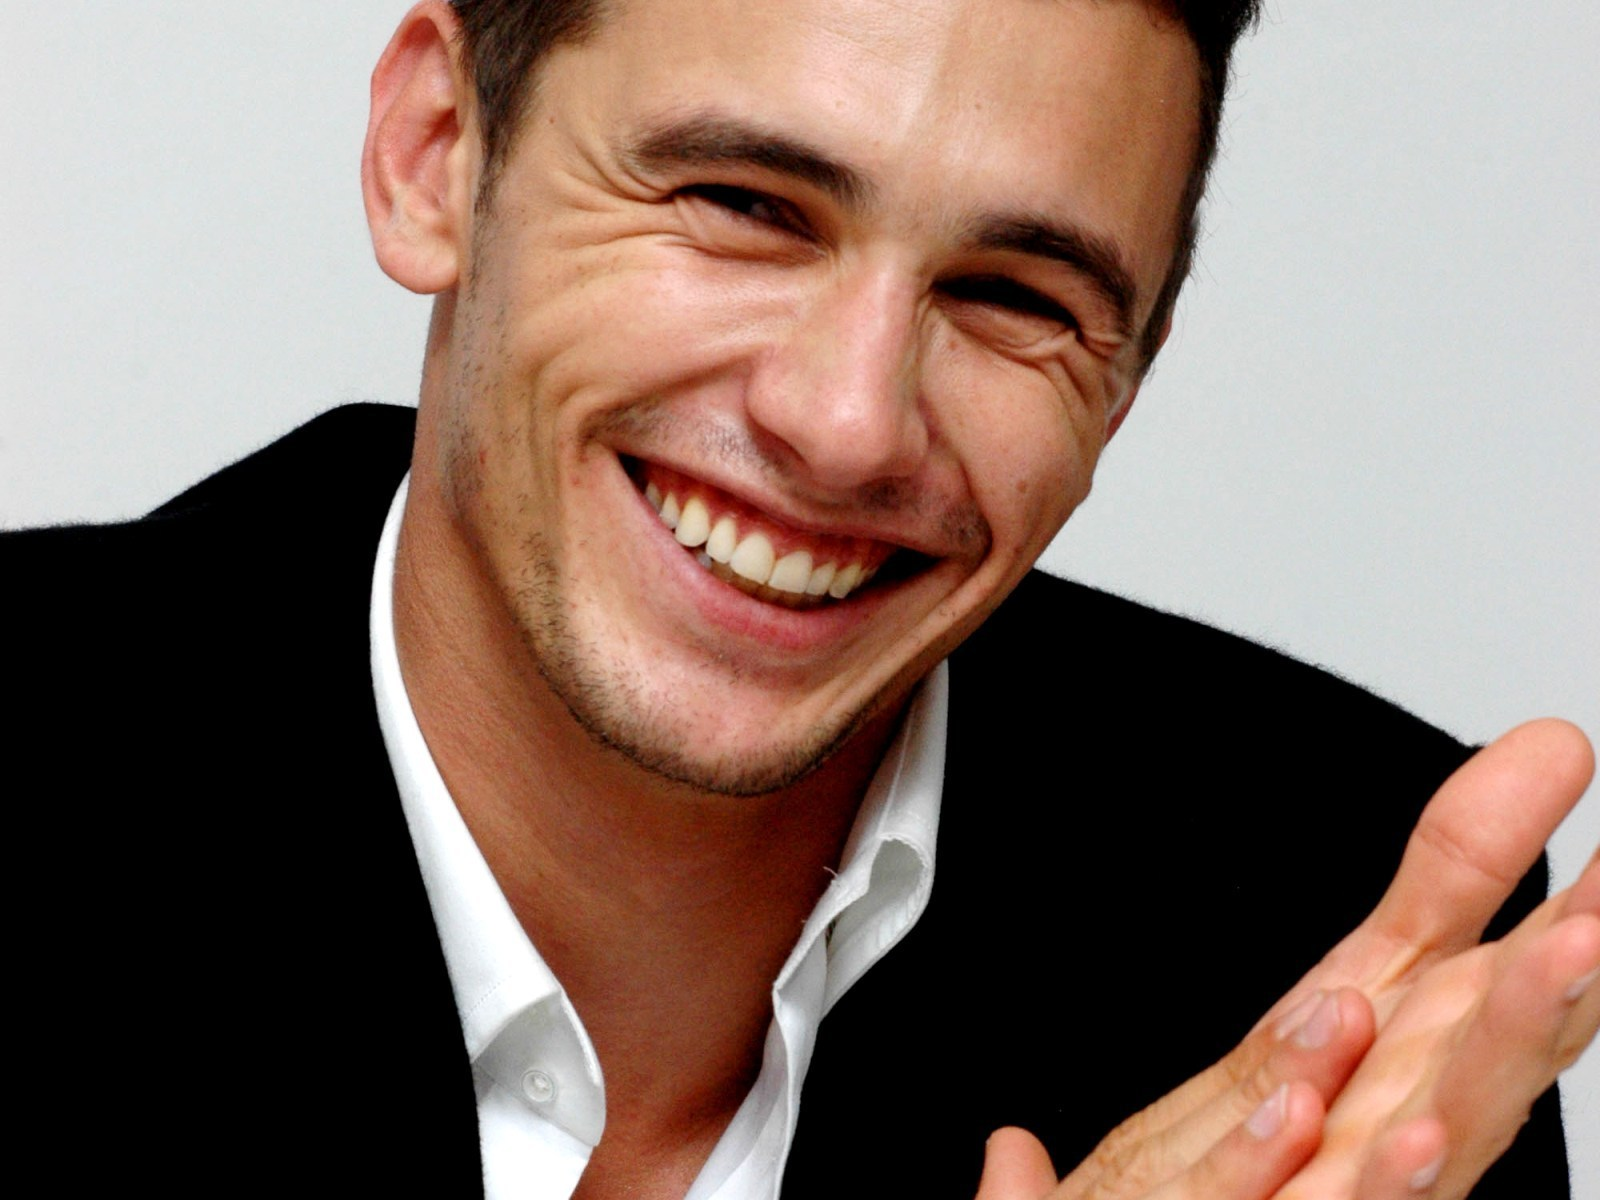 James Franco Net Worth